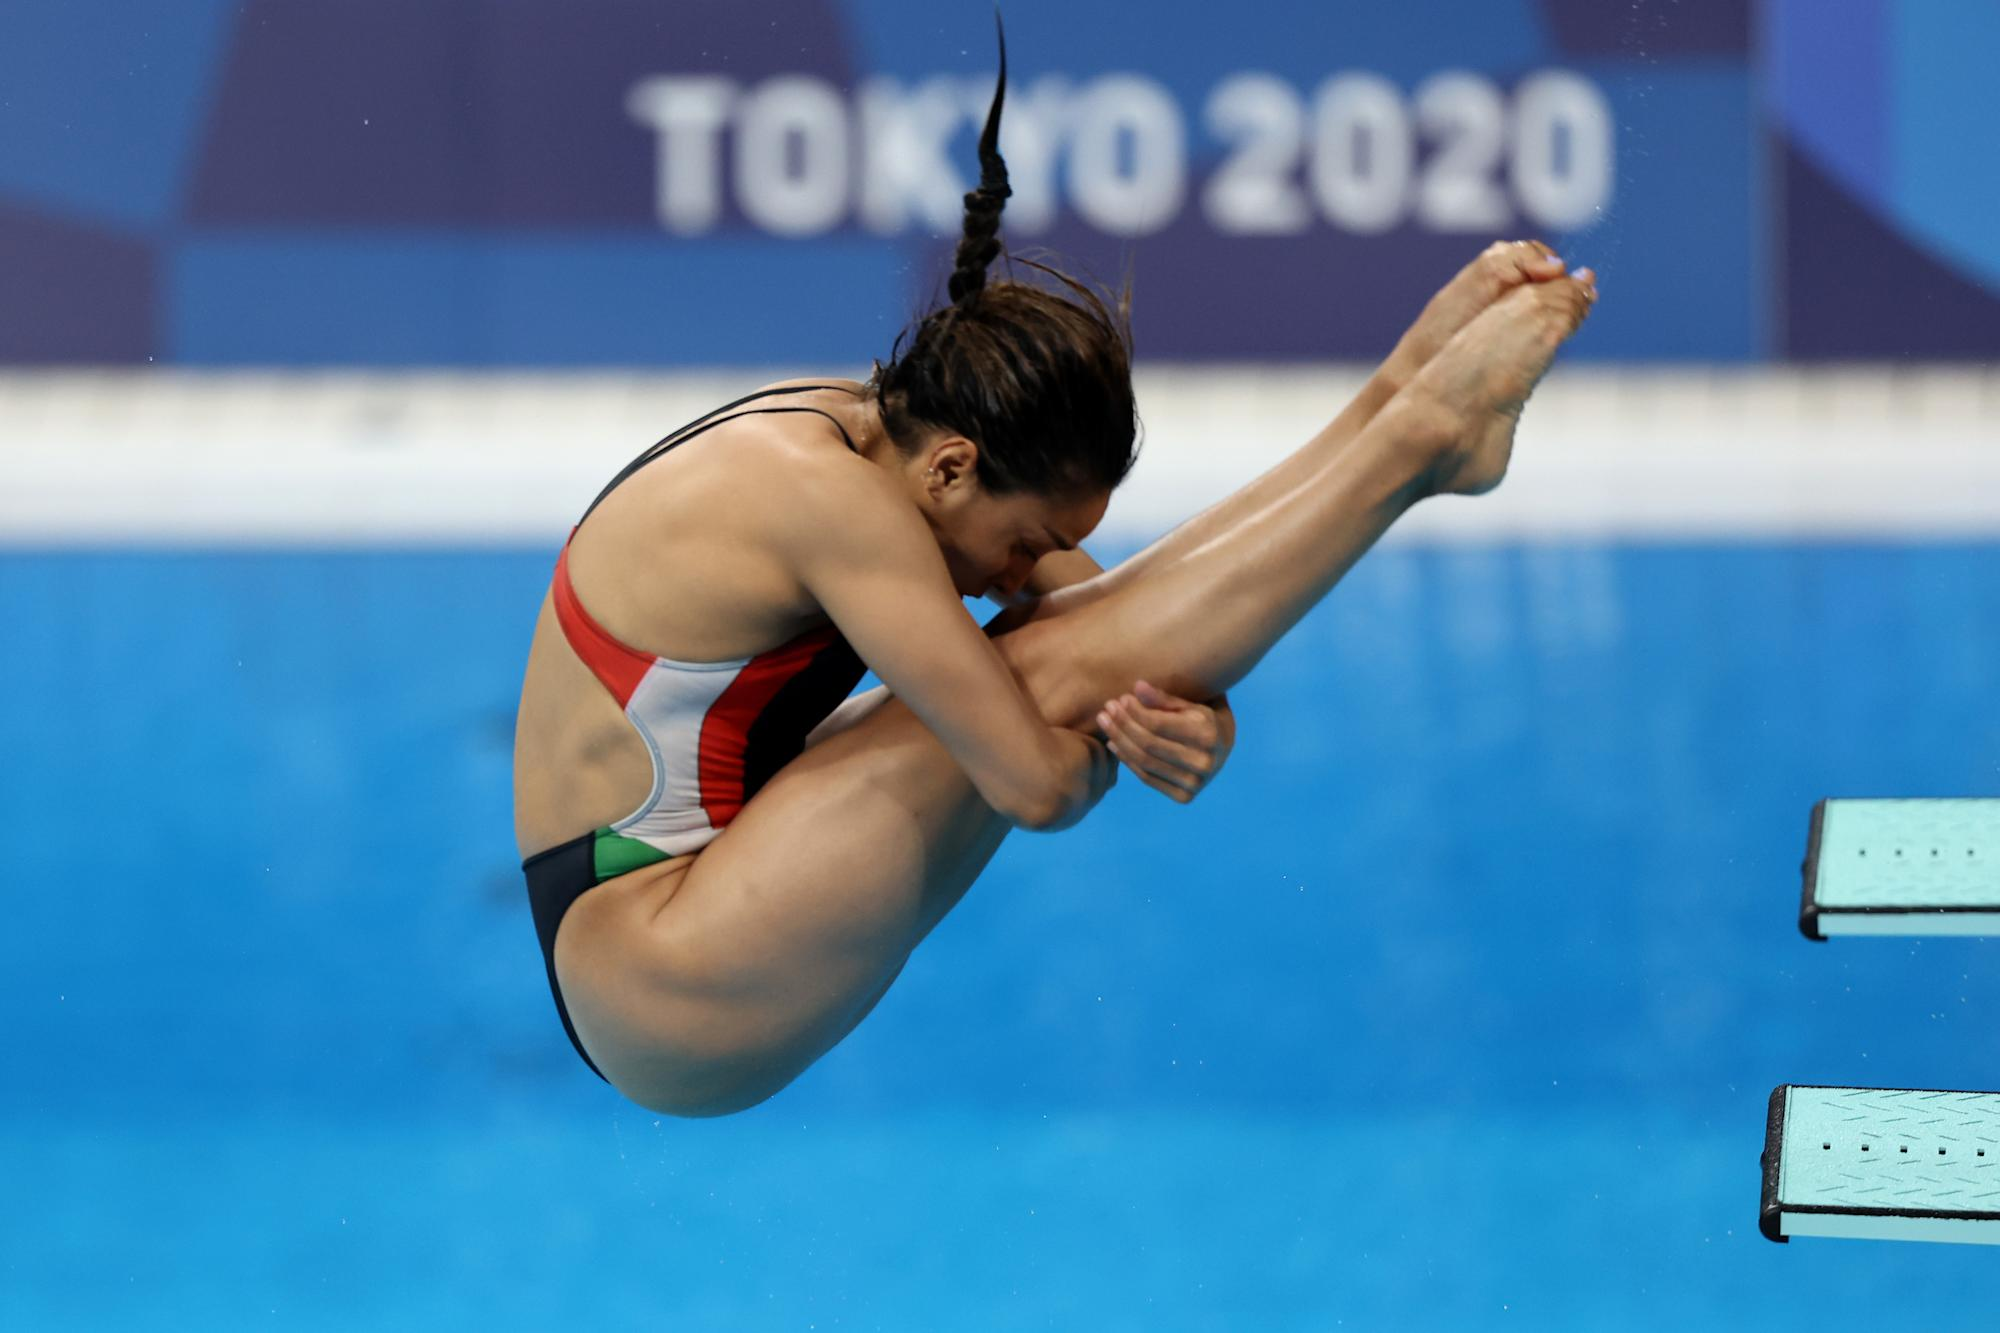 Mexican Arantza Chavez's dive, which qualified with zeros … sent her to last place